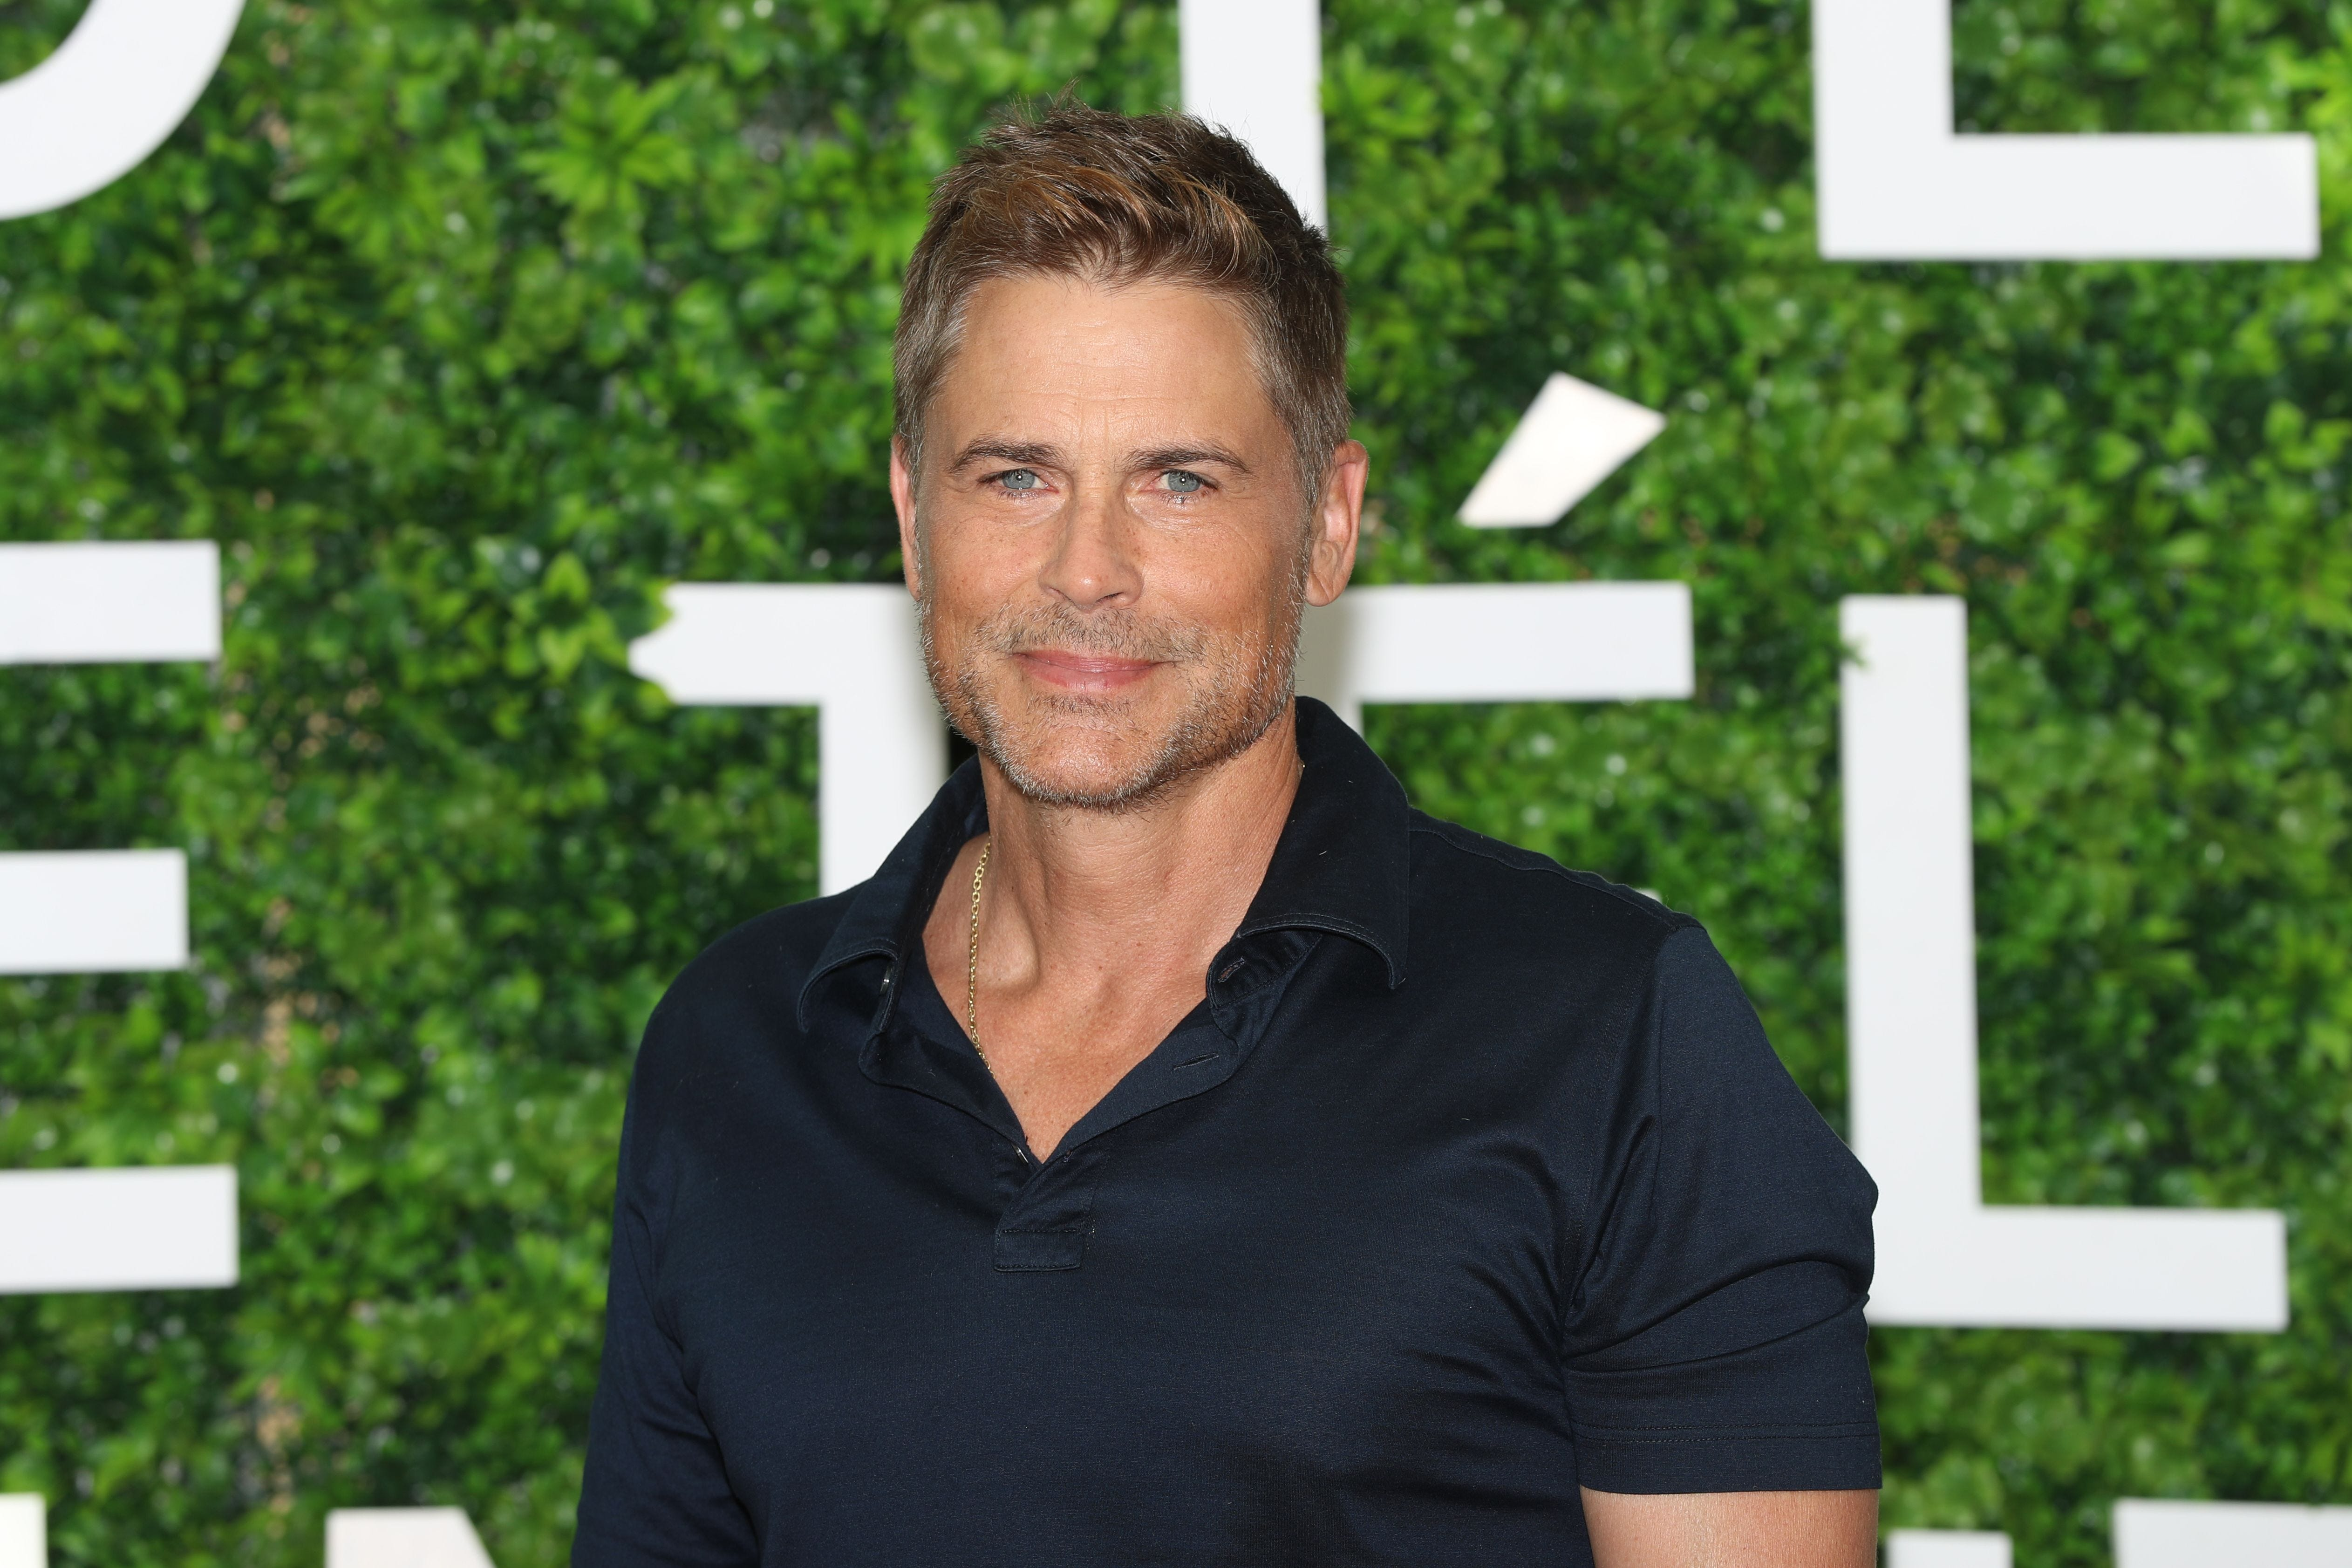 Rob Lowe's sons 'live to troll' him on Instagram and he takes it like a 'dad'